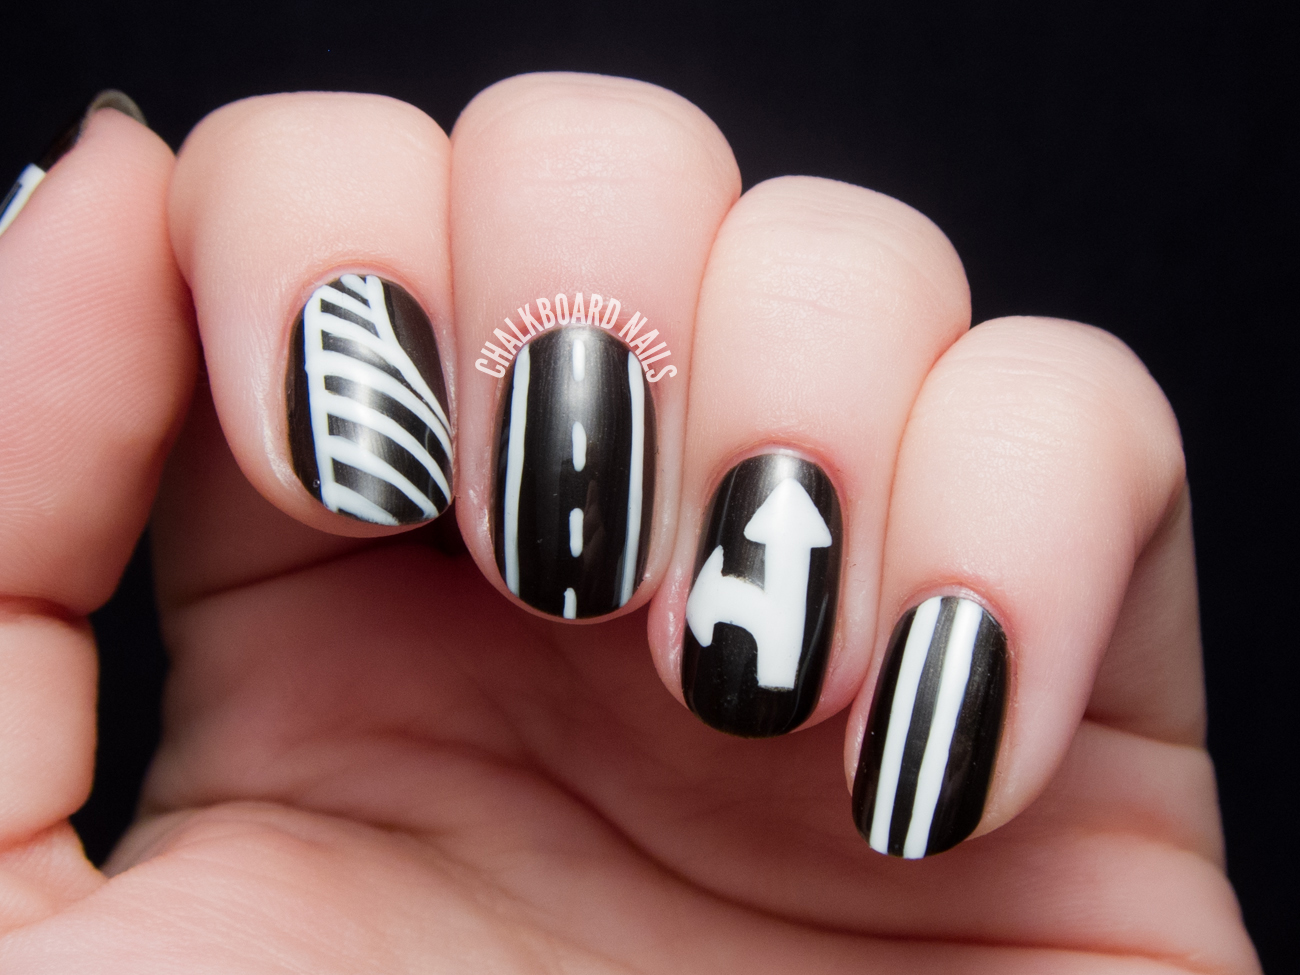 I Think This Nail Art Would Be Super Cute For Someone Just Learning To Drive Or If You Re Getting A New Car Are By Some Small Chance